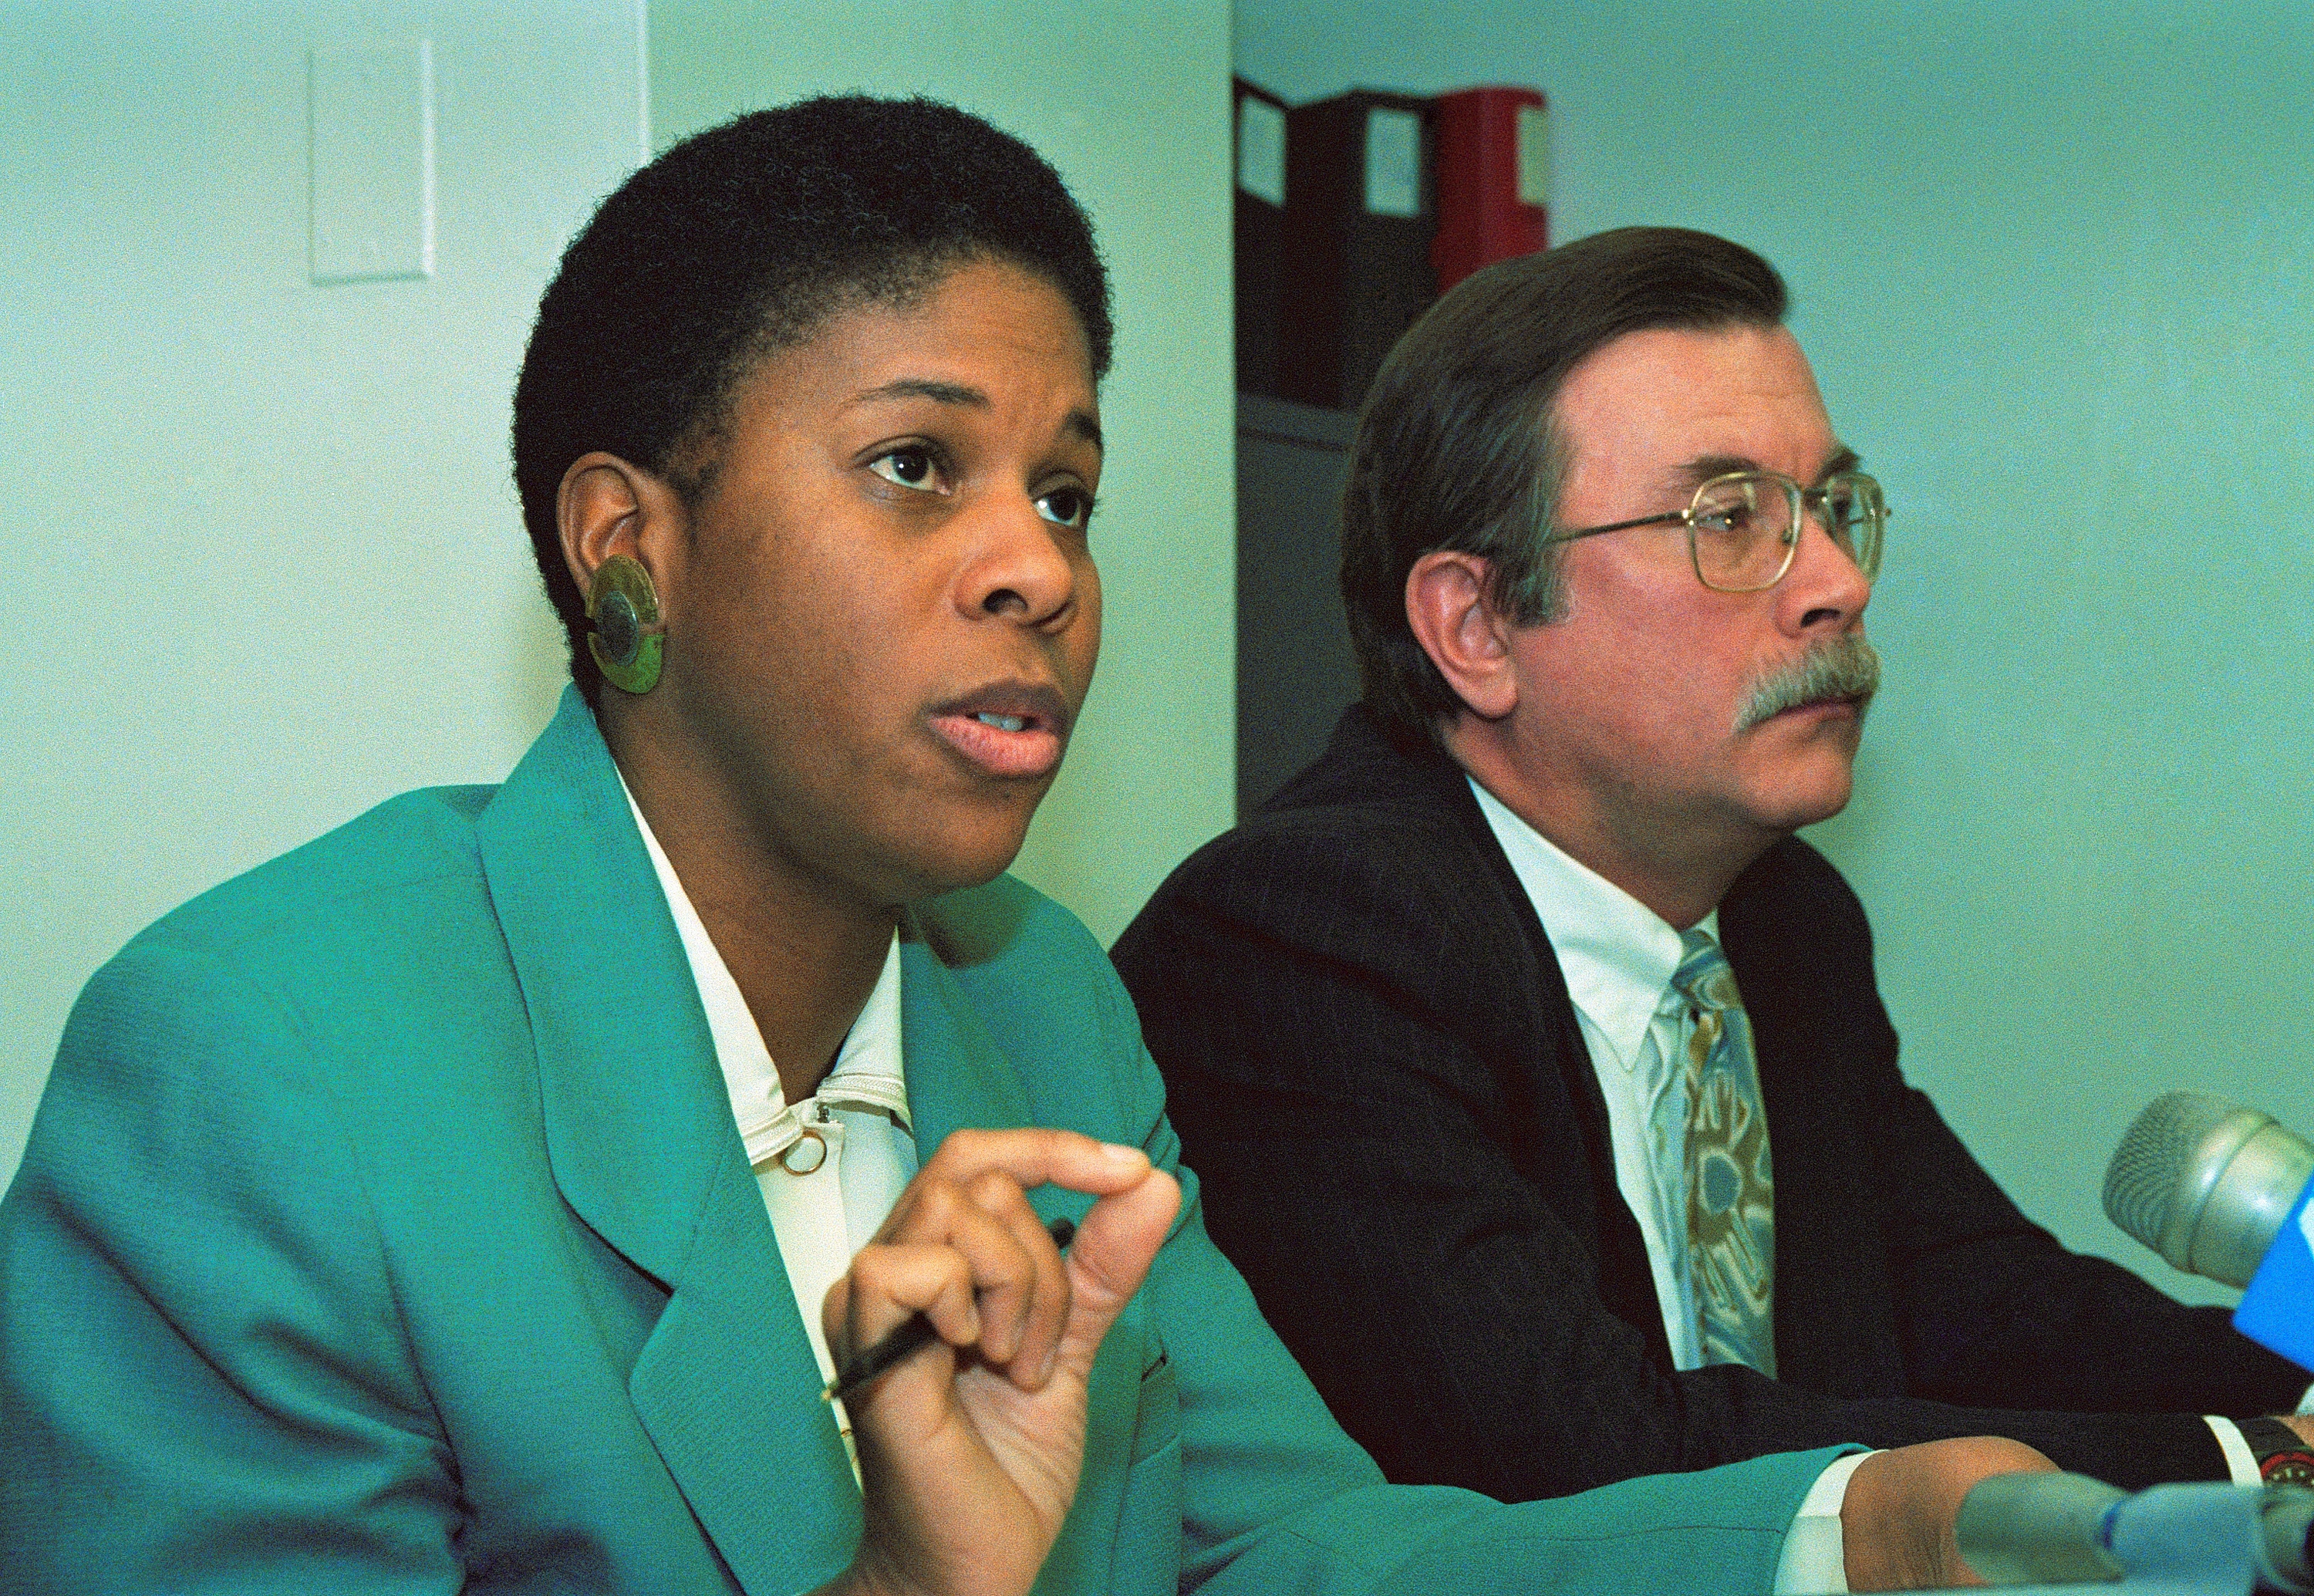 New Alliance Party candidate Lenora Fulani, left, and her lawyer in 1993.